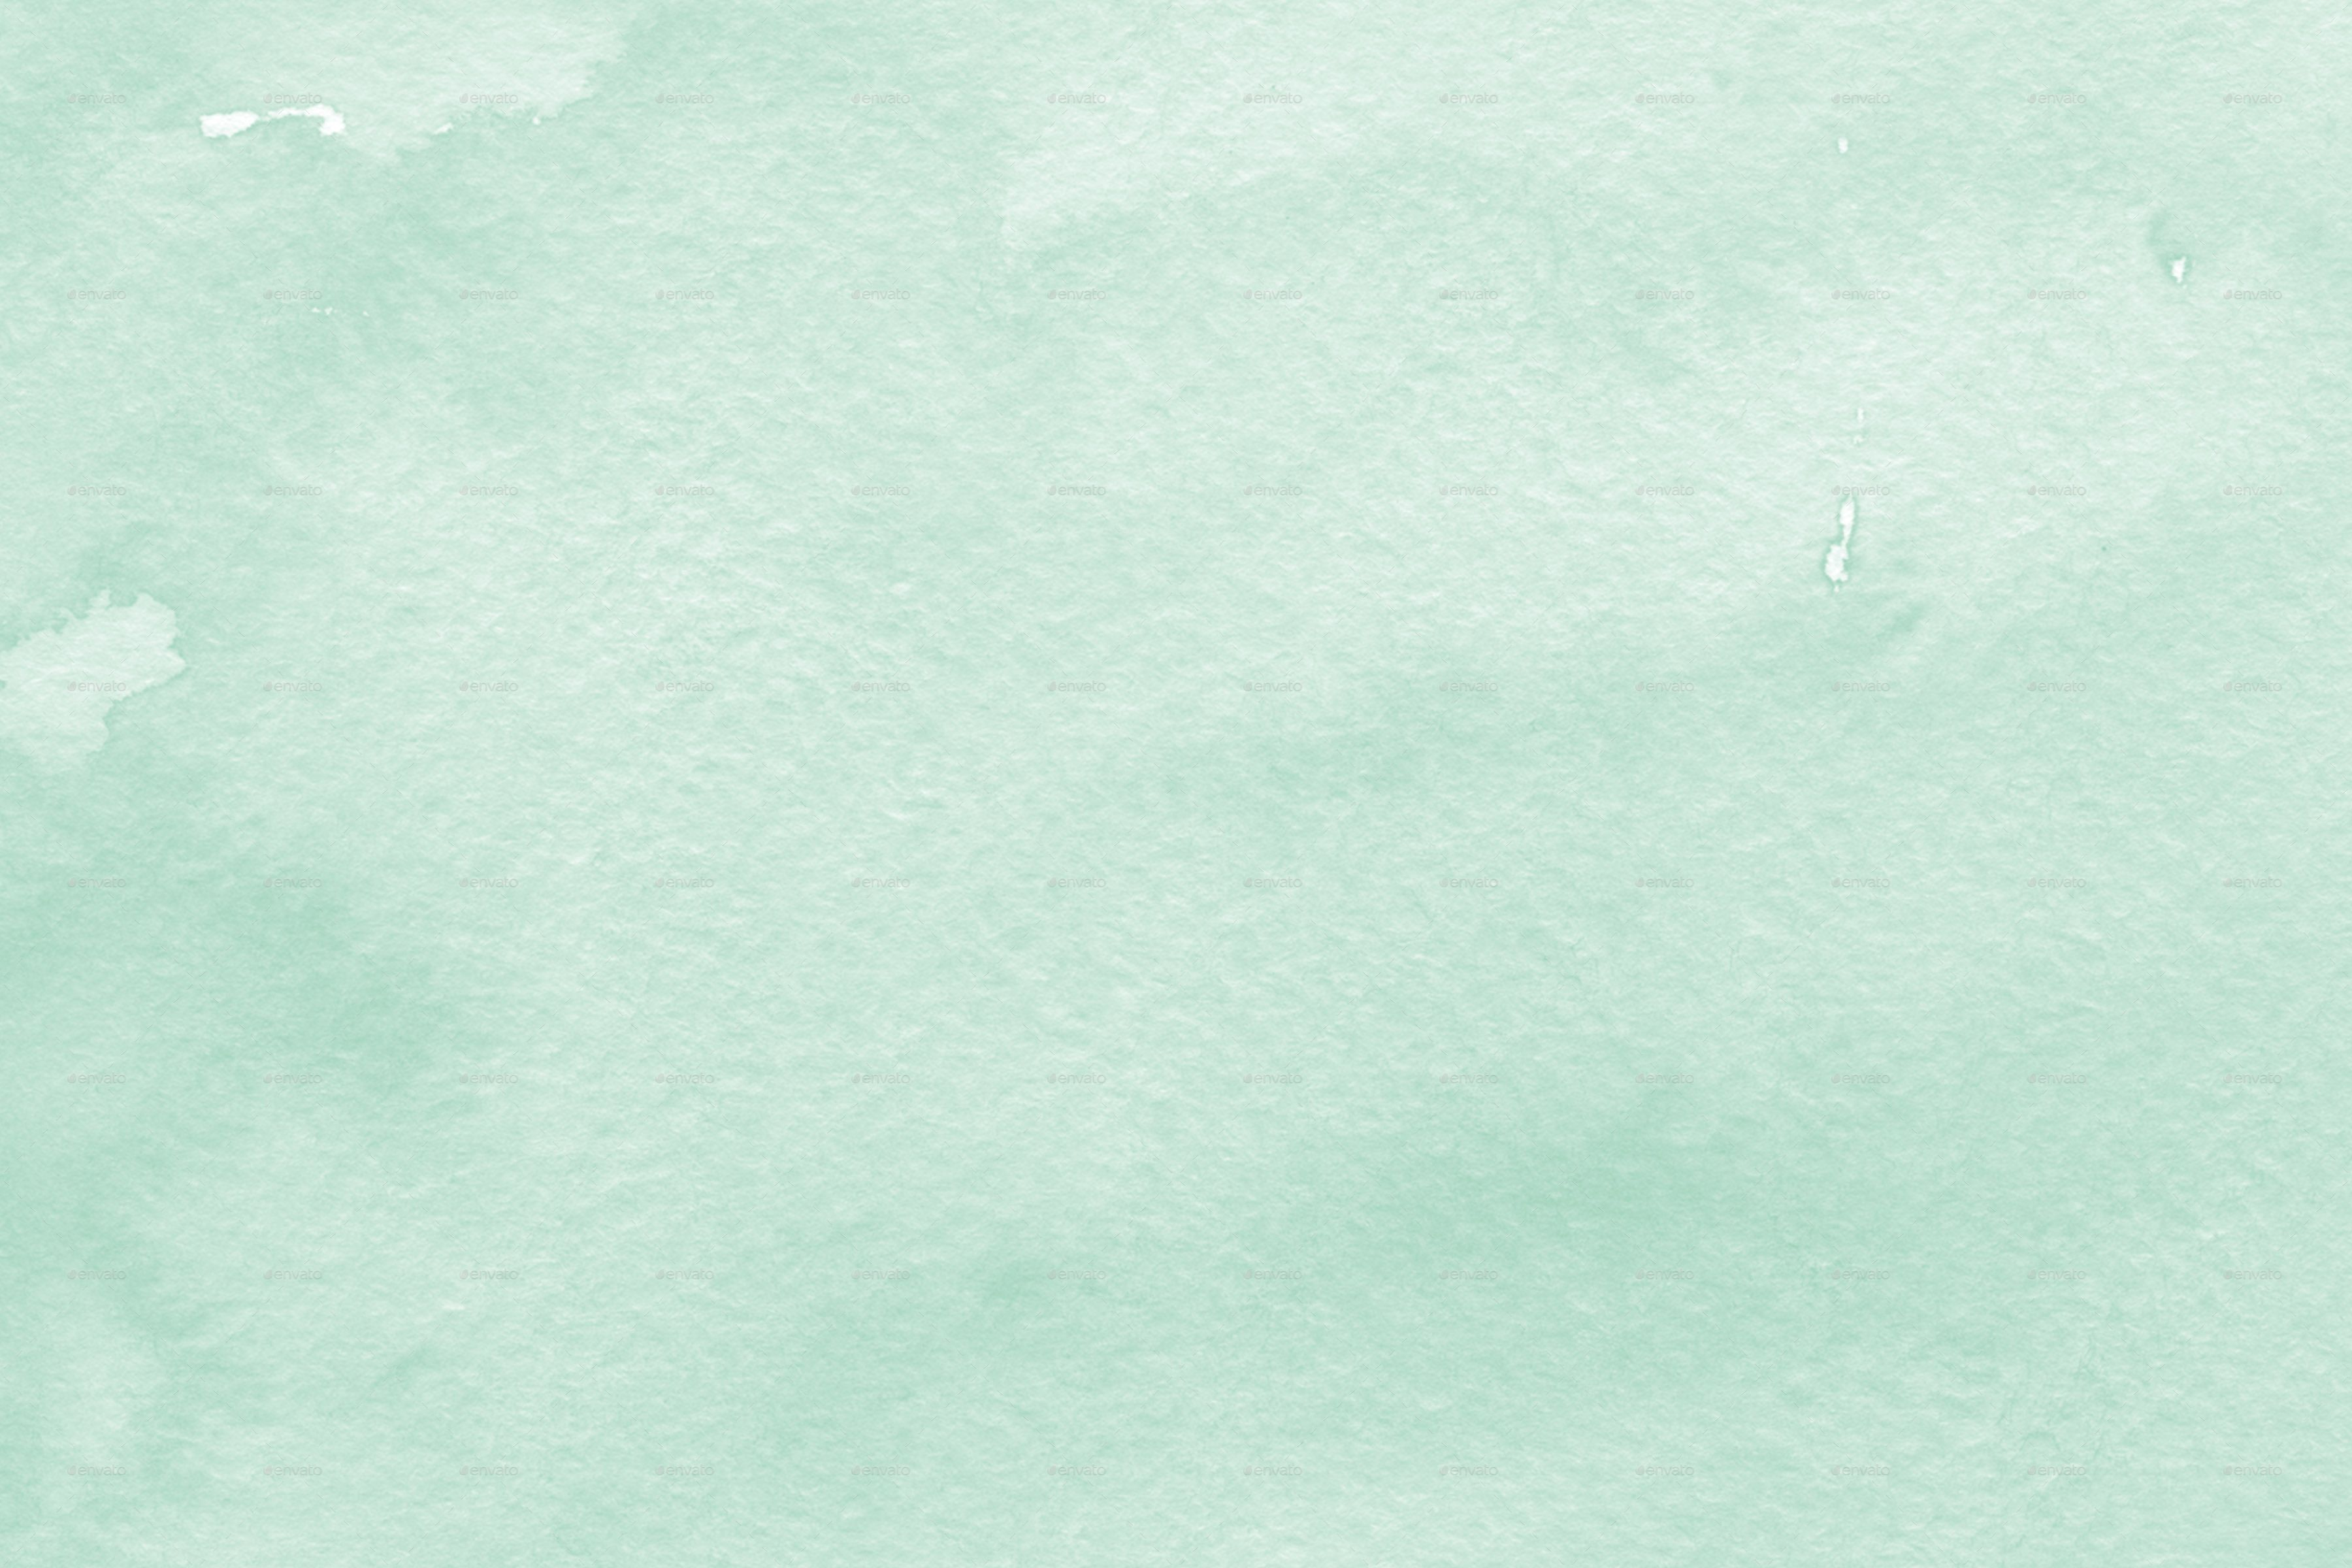 10 Mint Watercolor Backgrounds Background Watercolour Texture